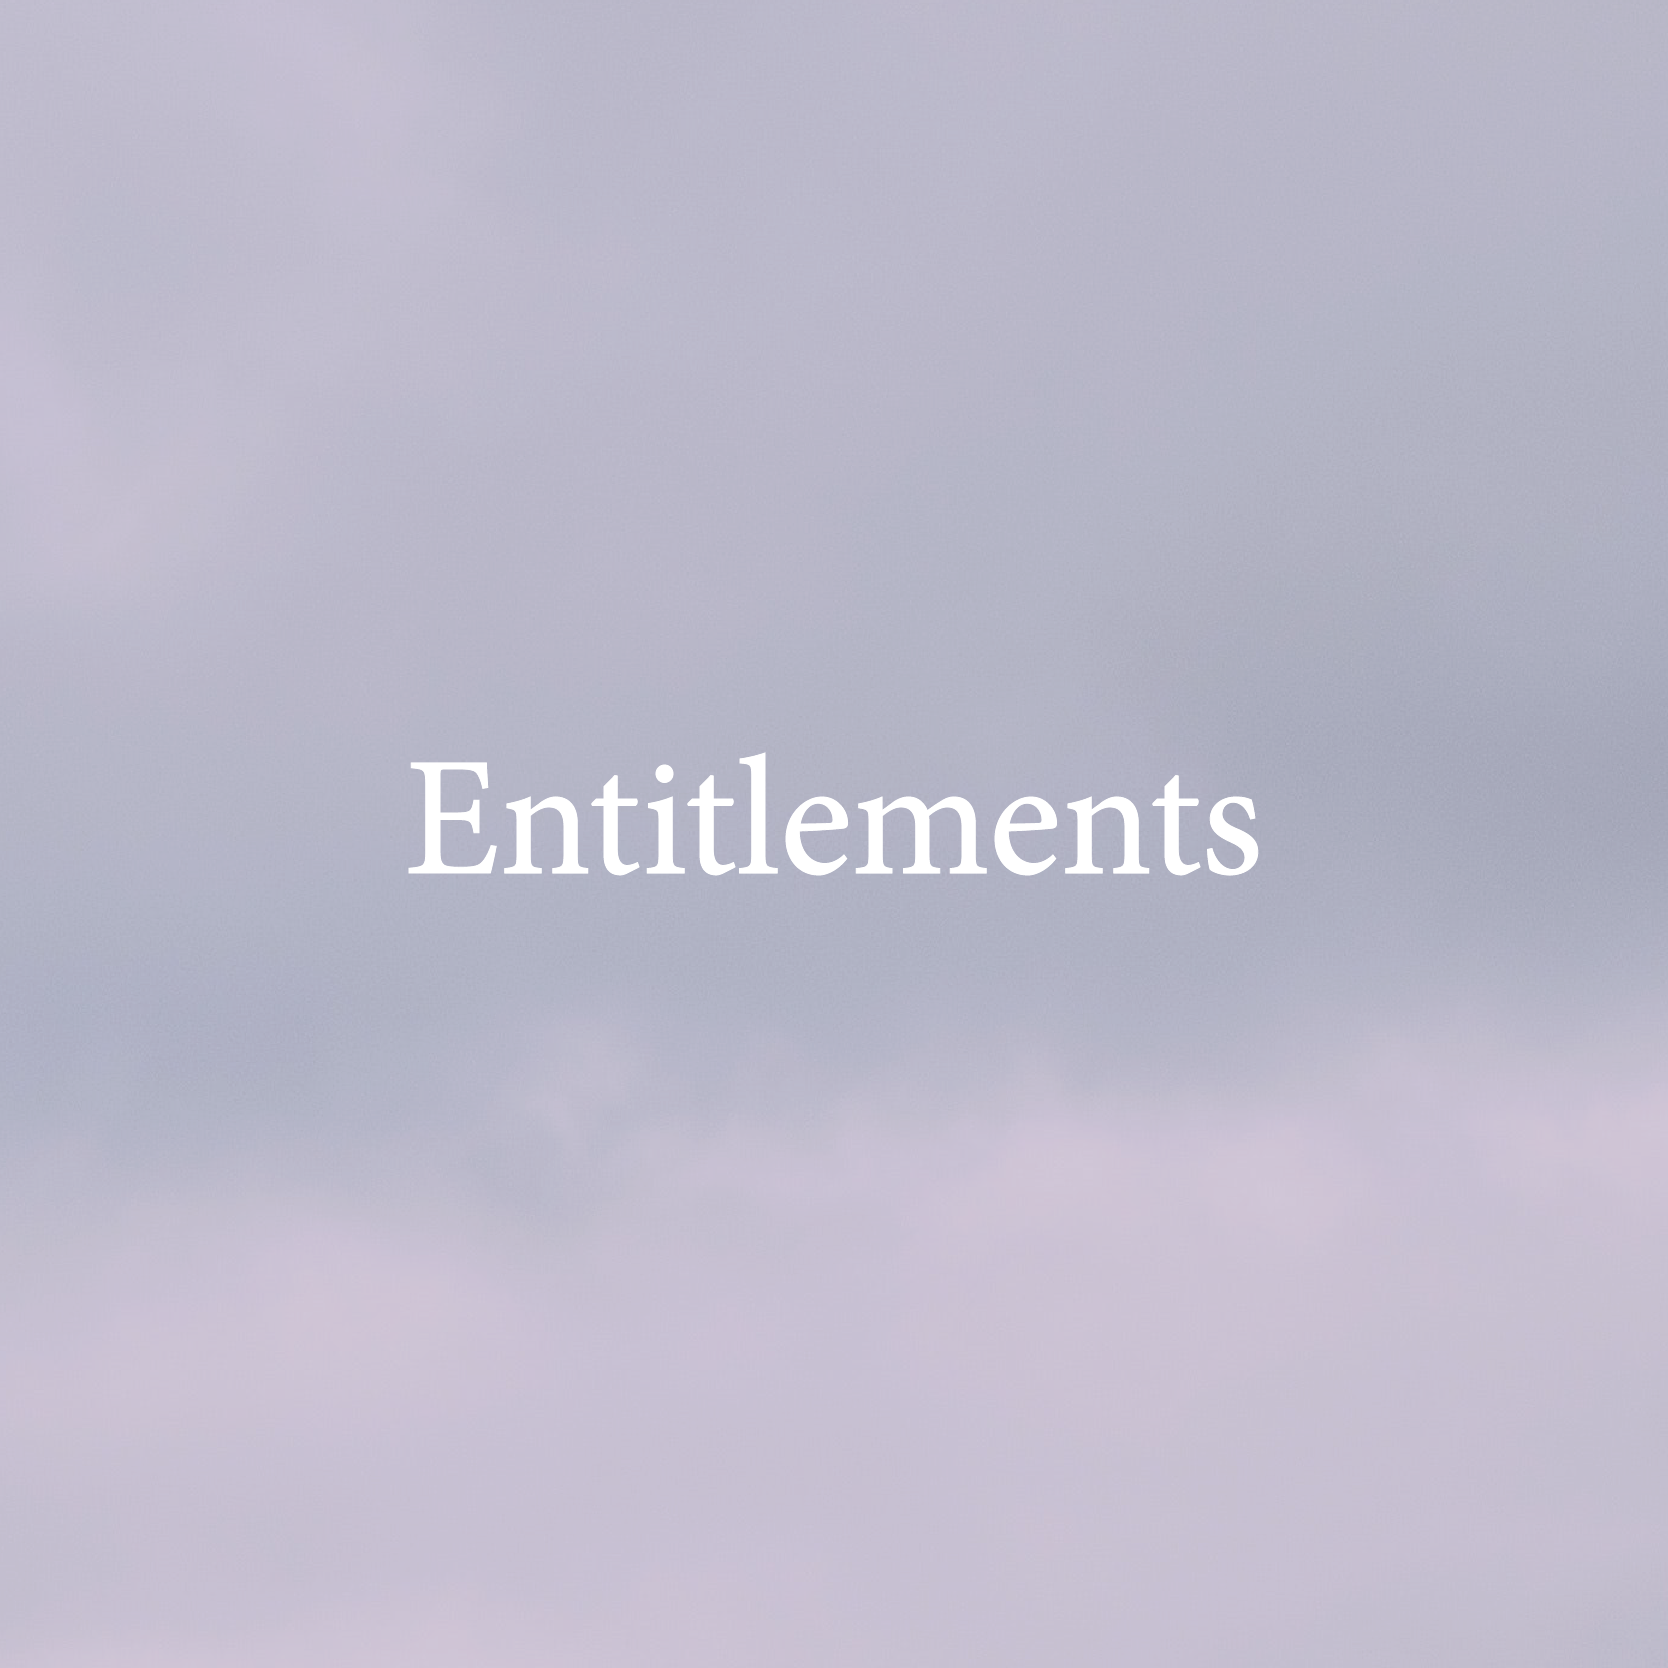 entitlements.png